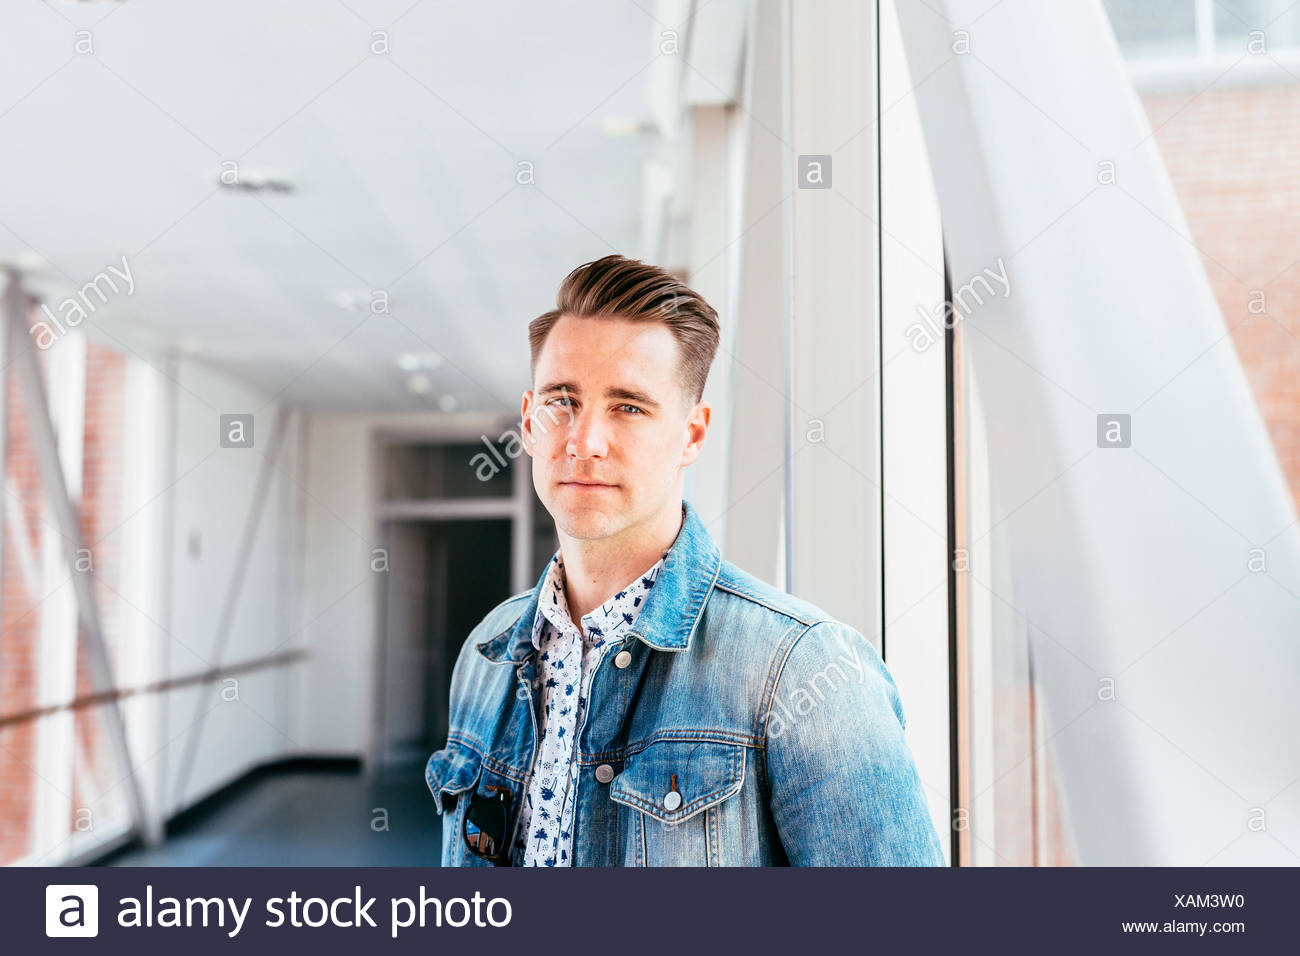 Portrait of confident media student at passage in university - Stock Image